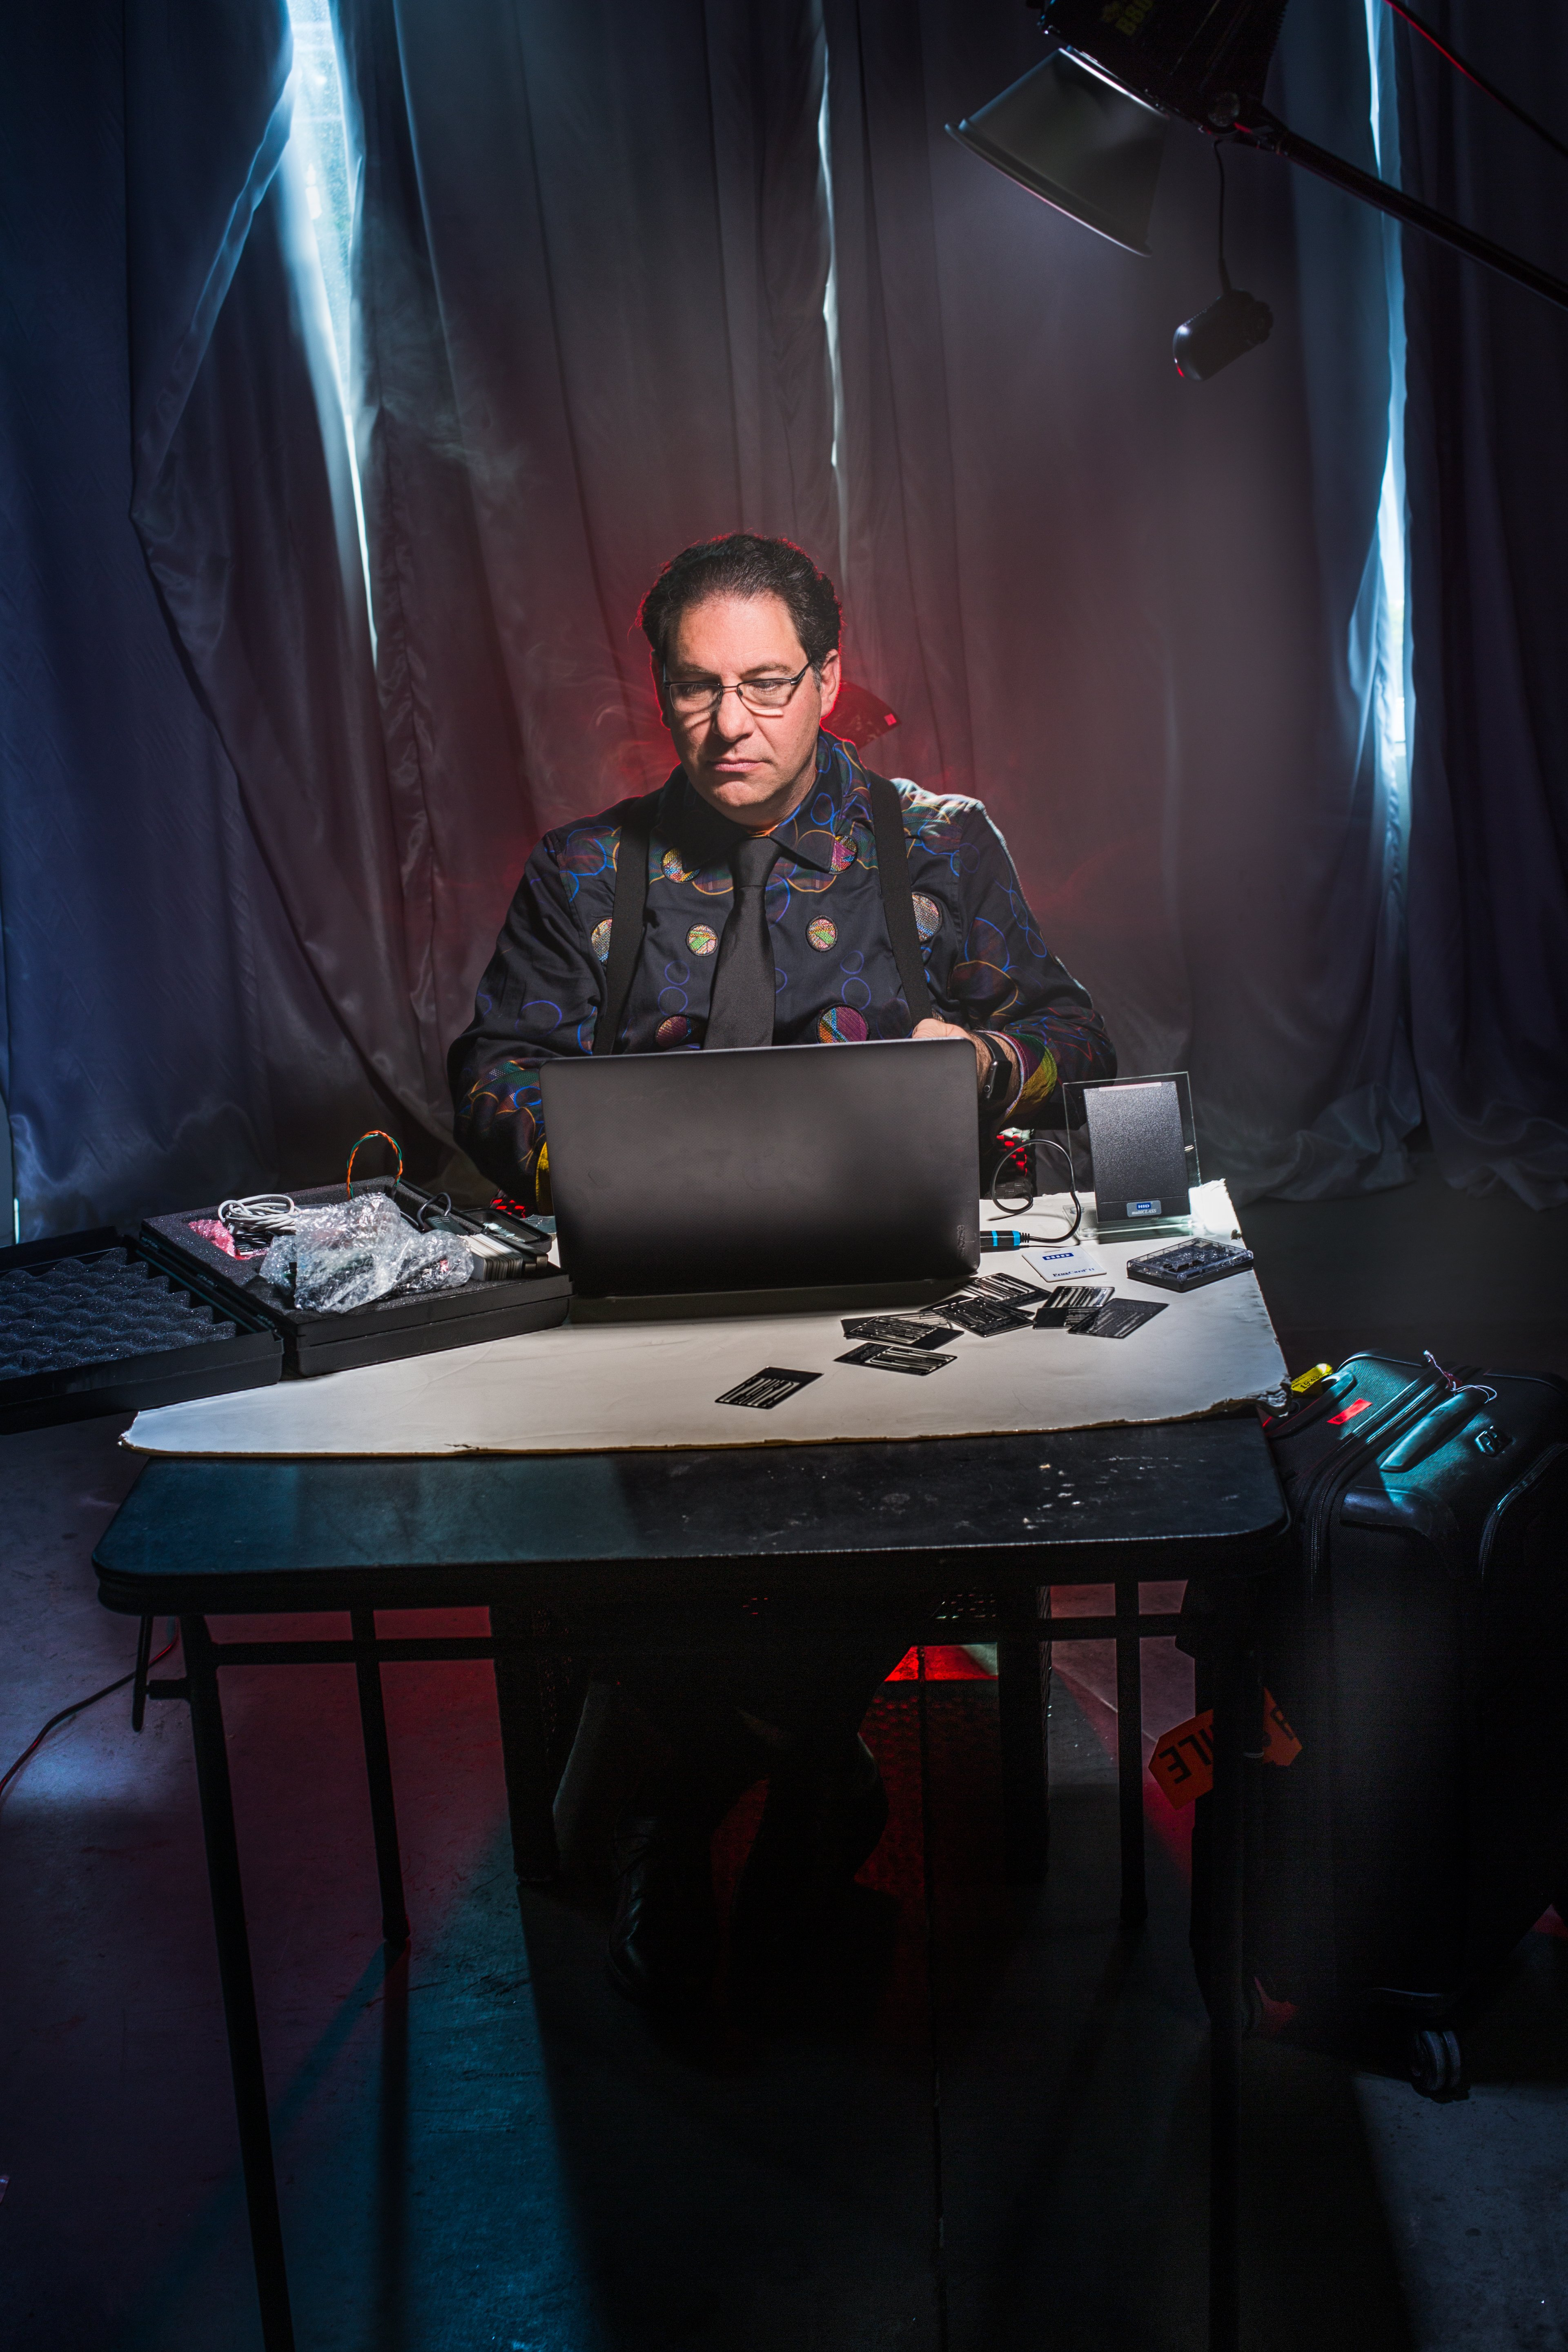 Kevin-Mitnick-Desk-Shot-1-High-Resolution